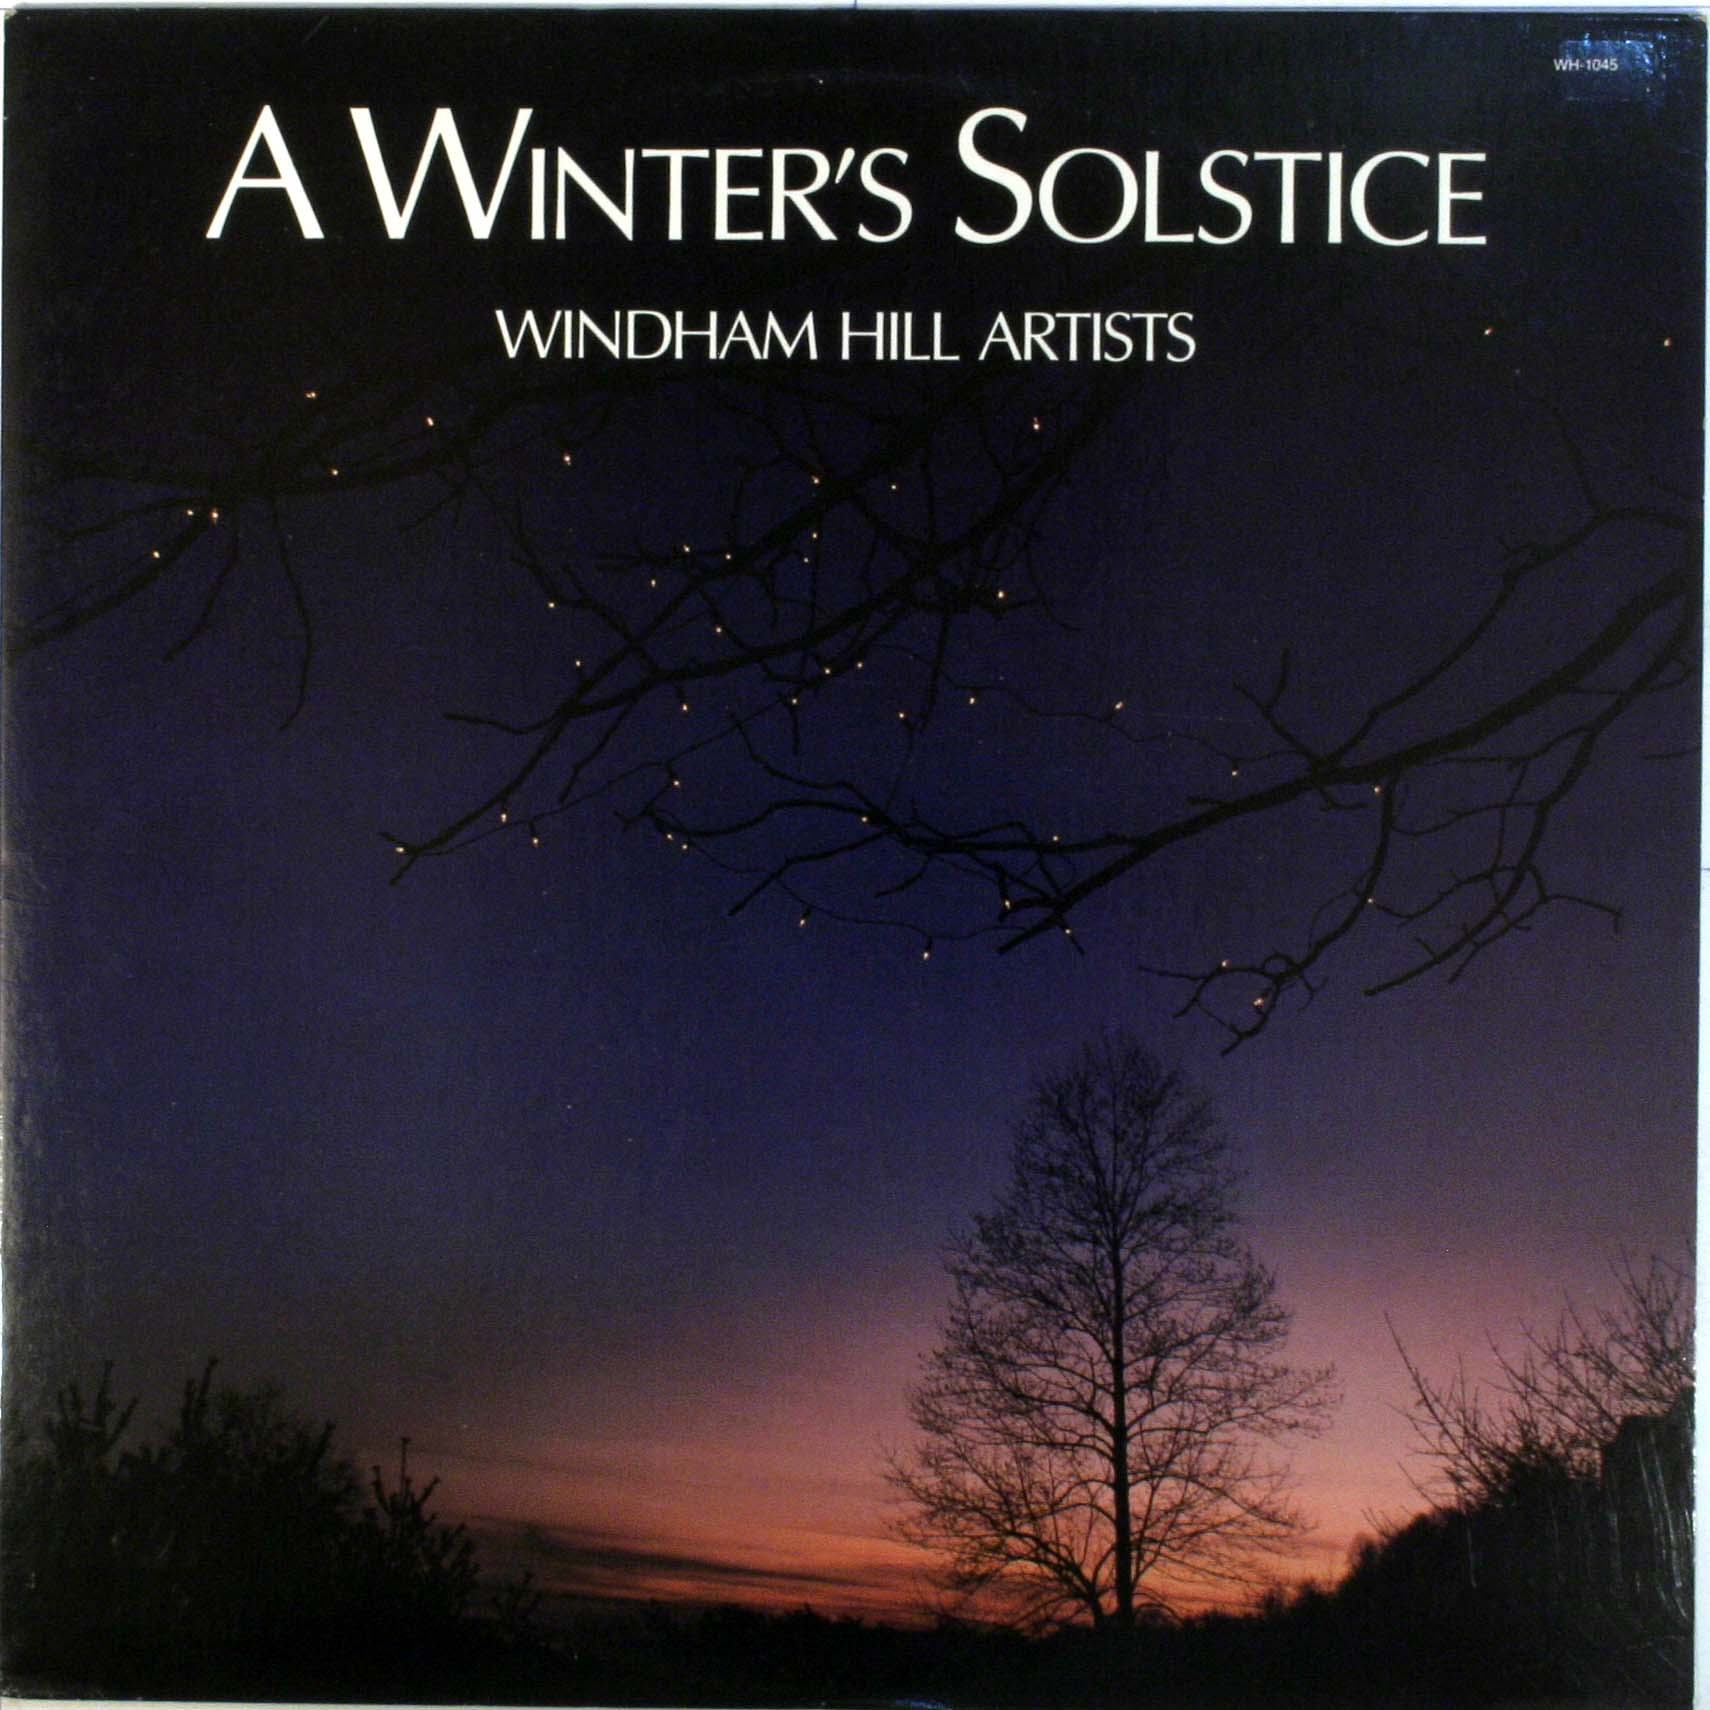 Windham Hill Records - A Winter's Solstice